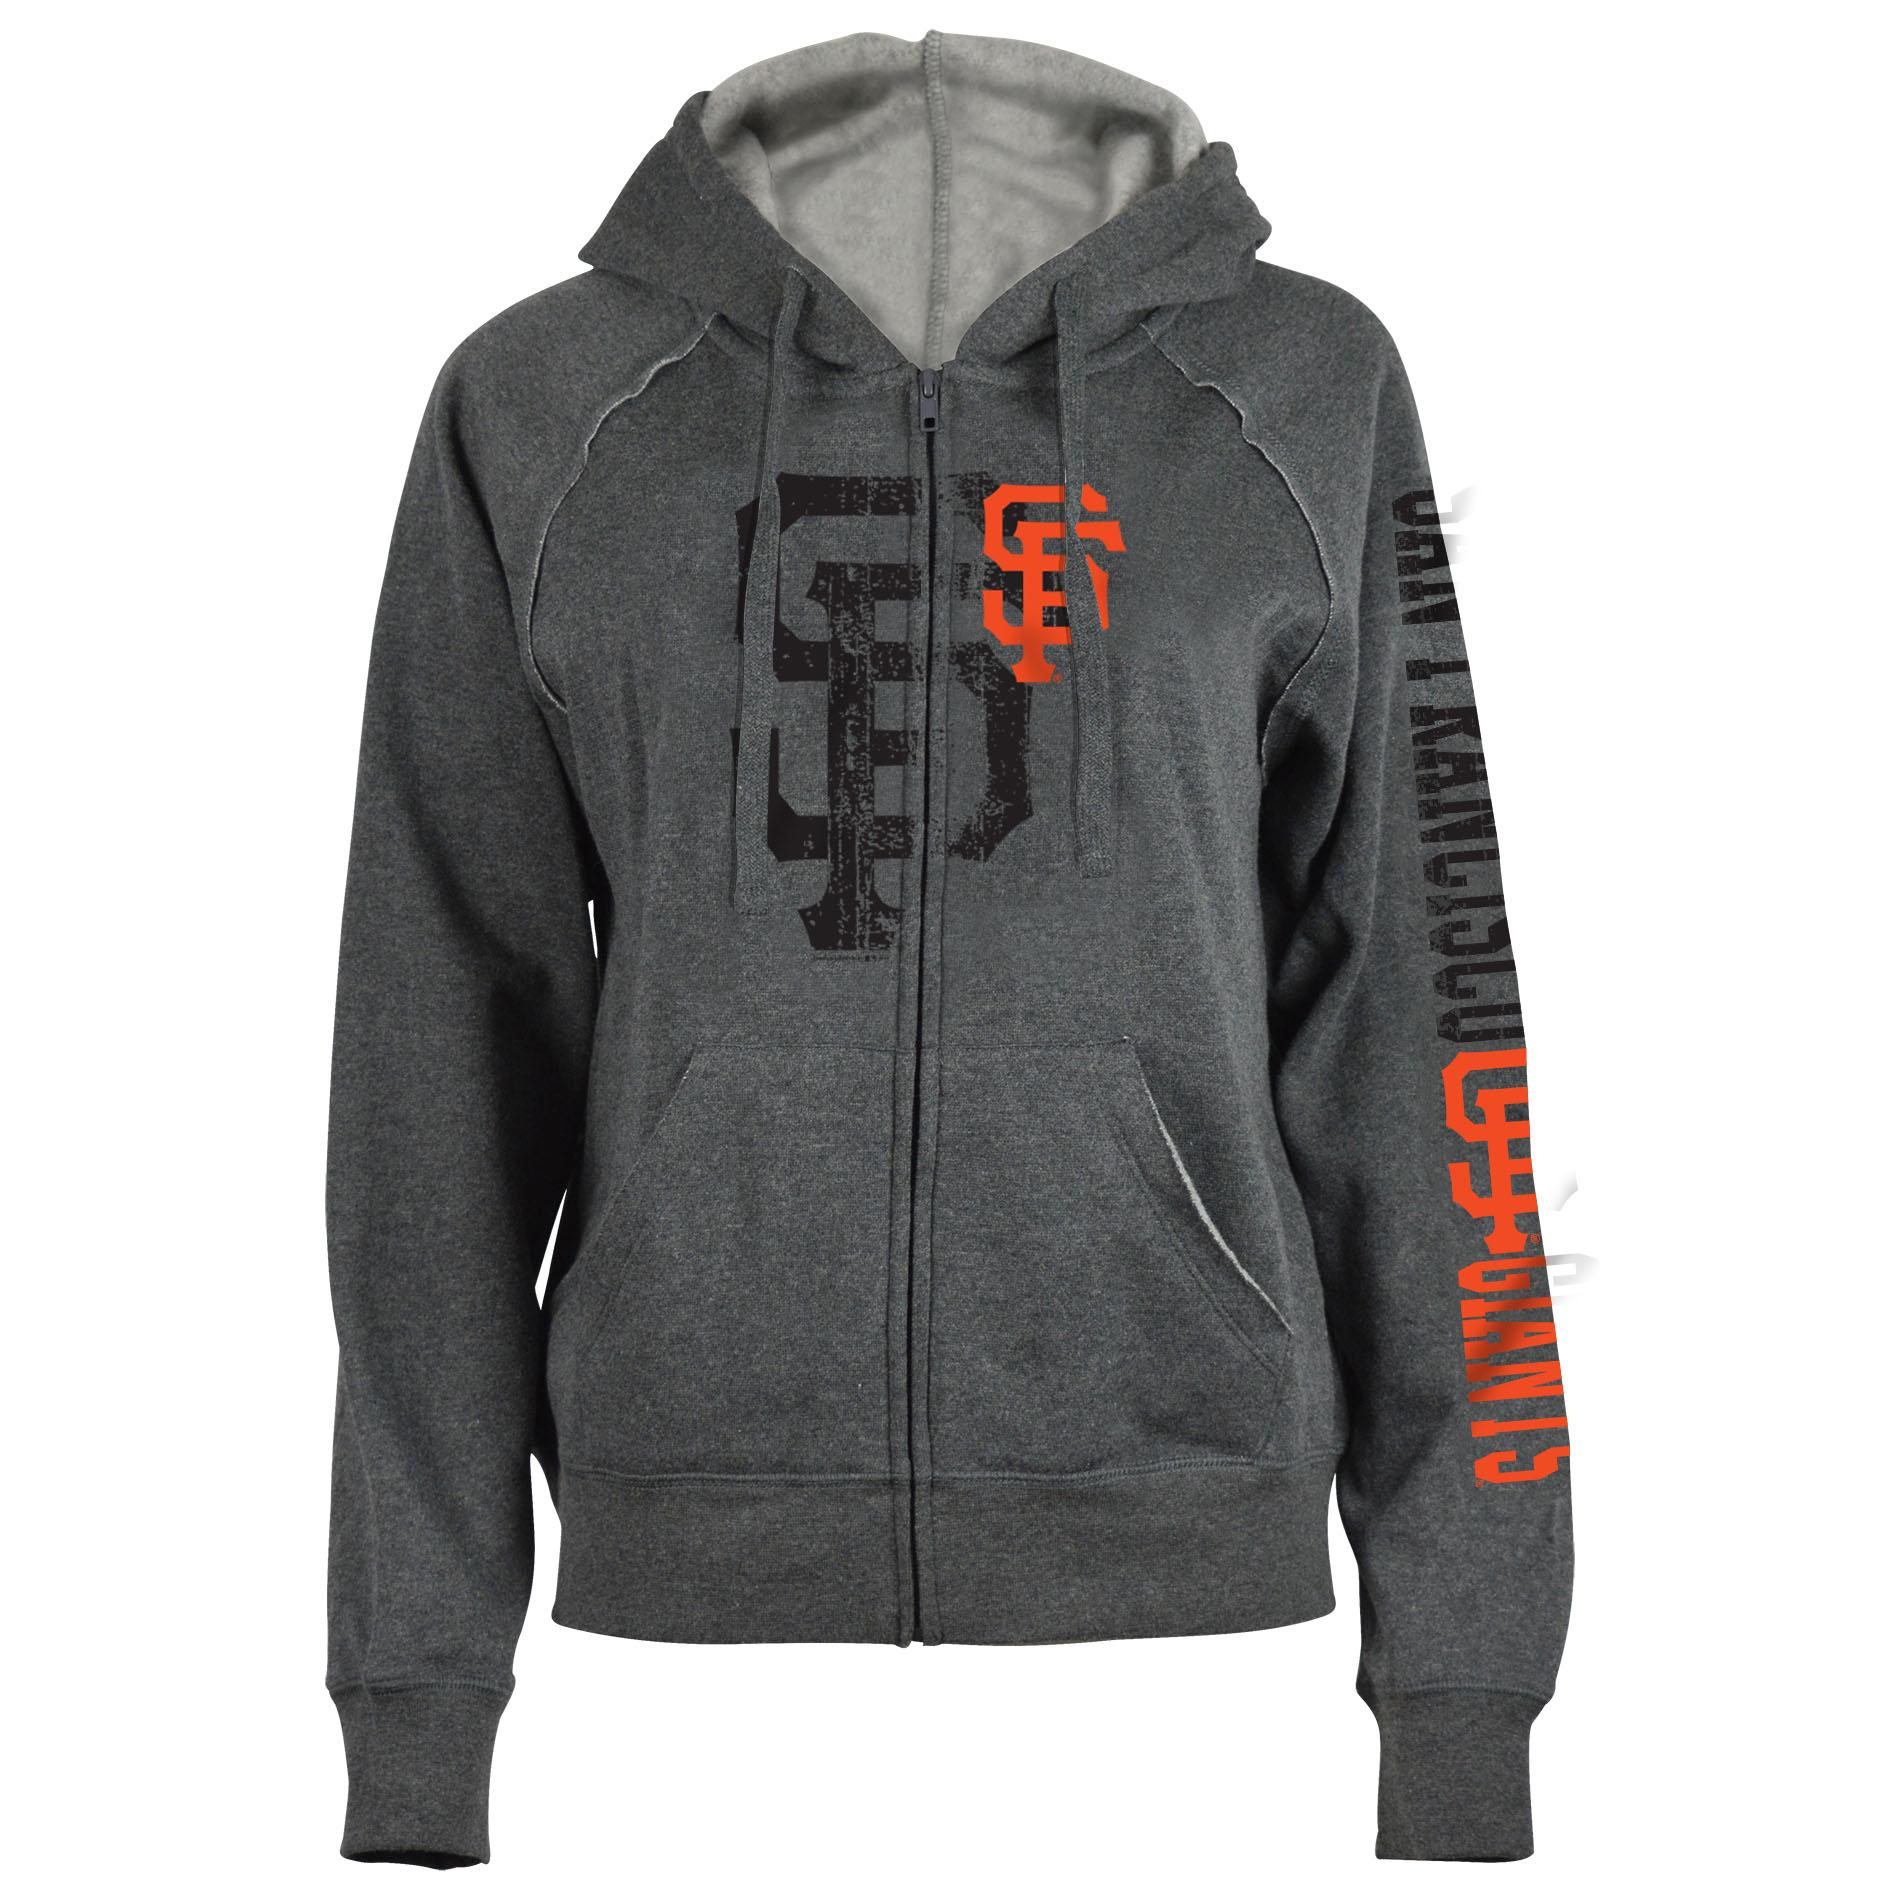 MLB Womens Hoodie Jacket San Francisco Giants